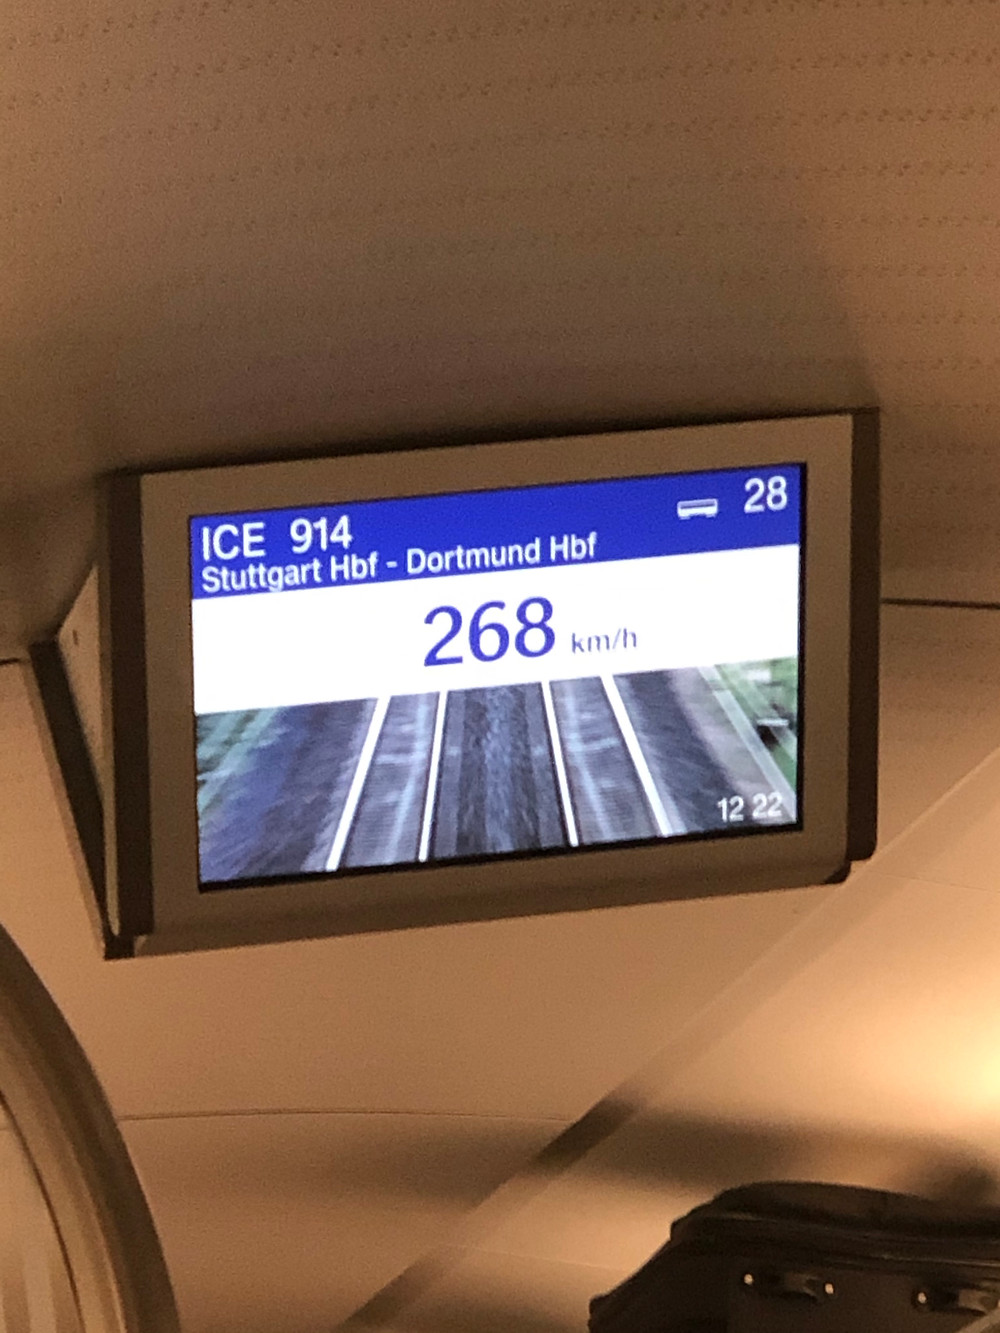 Taking the train to Düsseldorf was an experience. 160 miles per hour, and super smooth & quiet